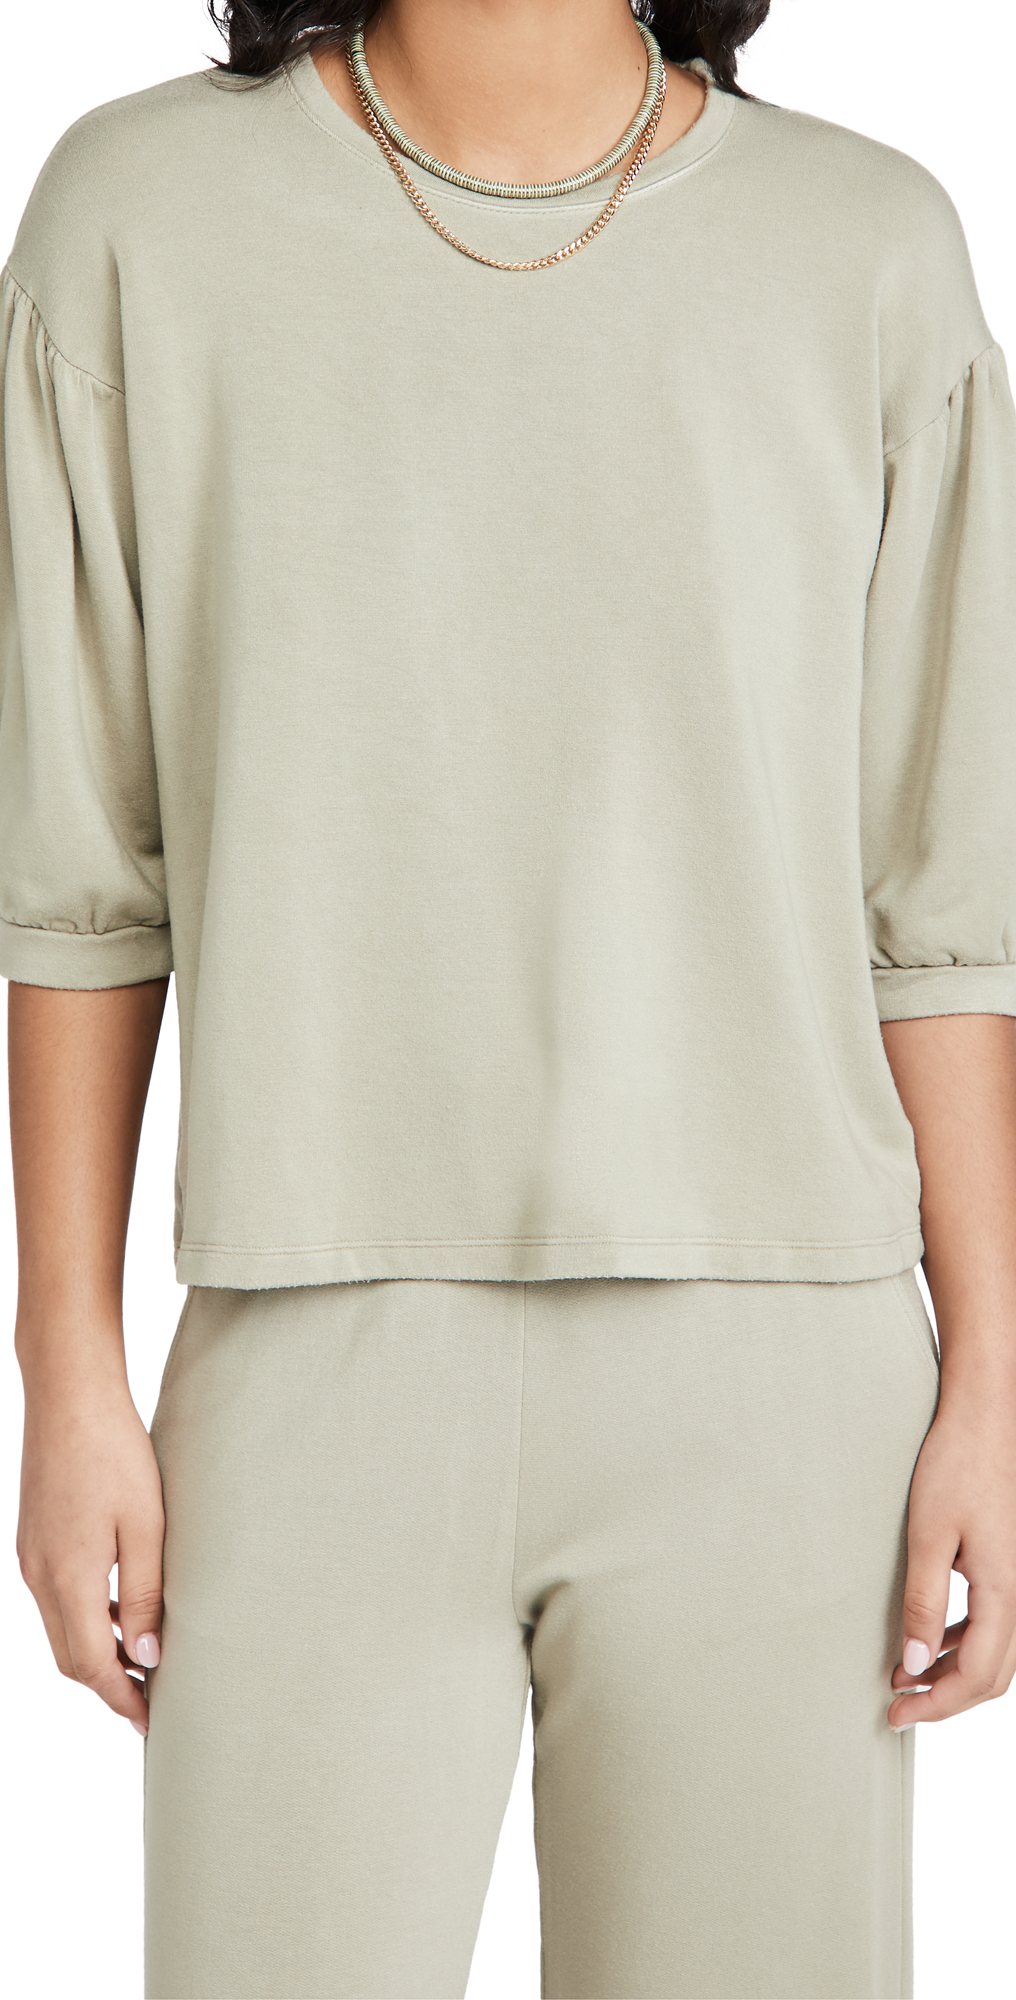 SUNDRY Balloon Sleeve Sweatshirt